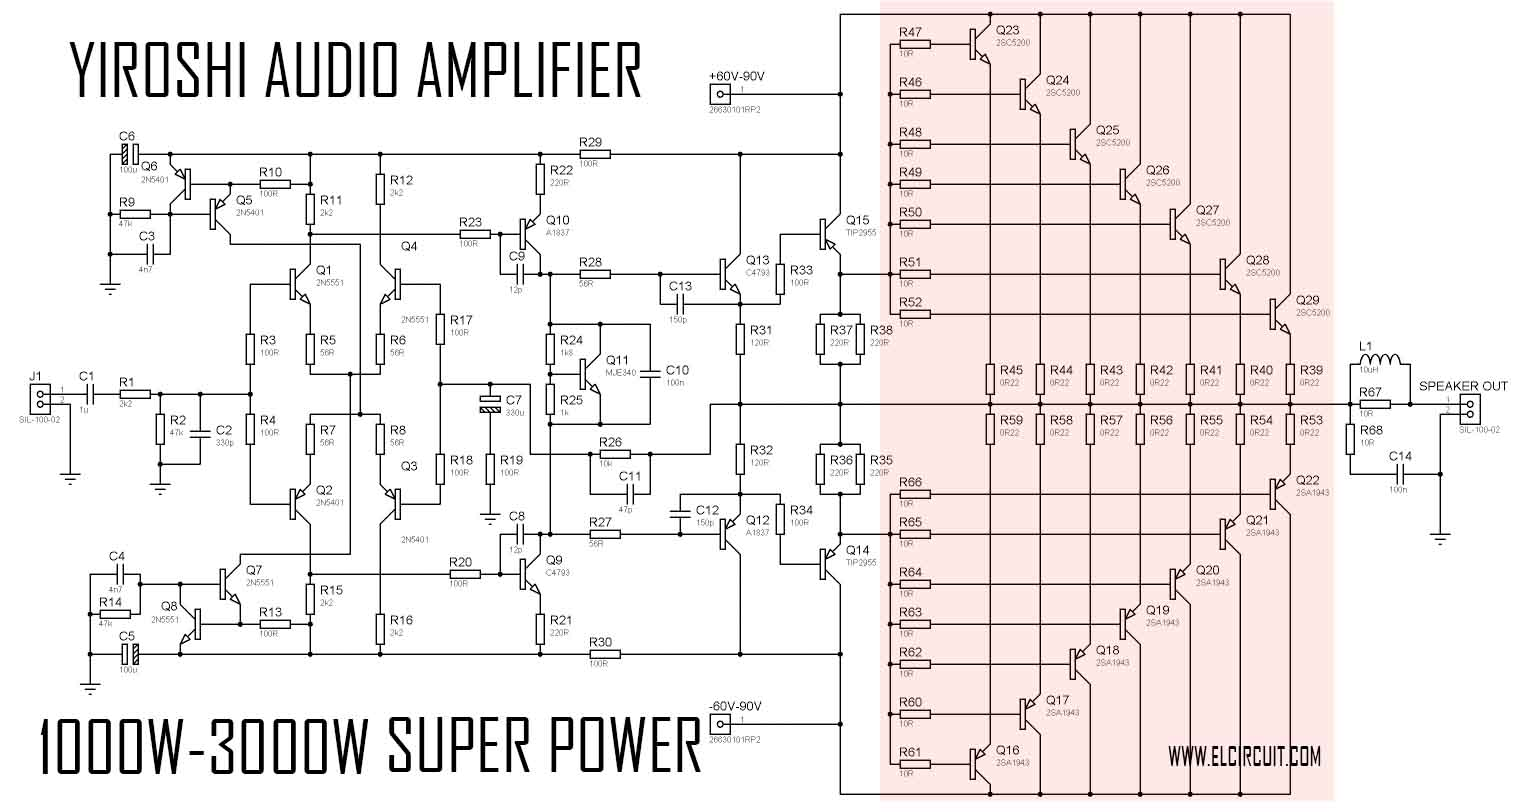 medium resolution of super power amplifier yiroshi audio 1000 watt